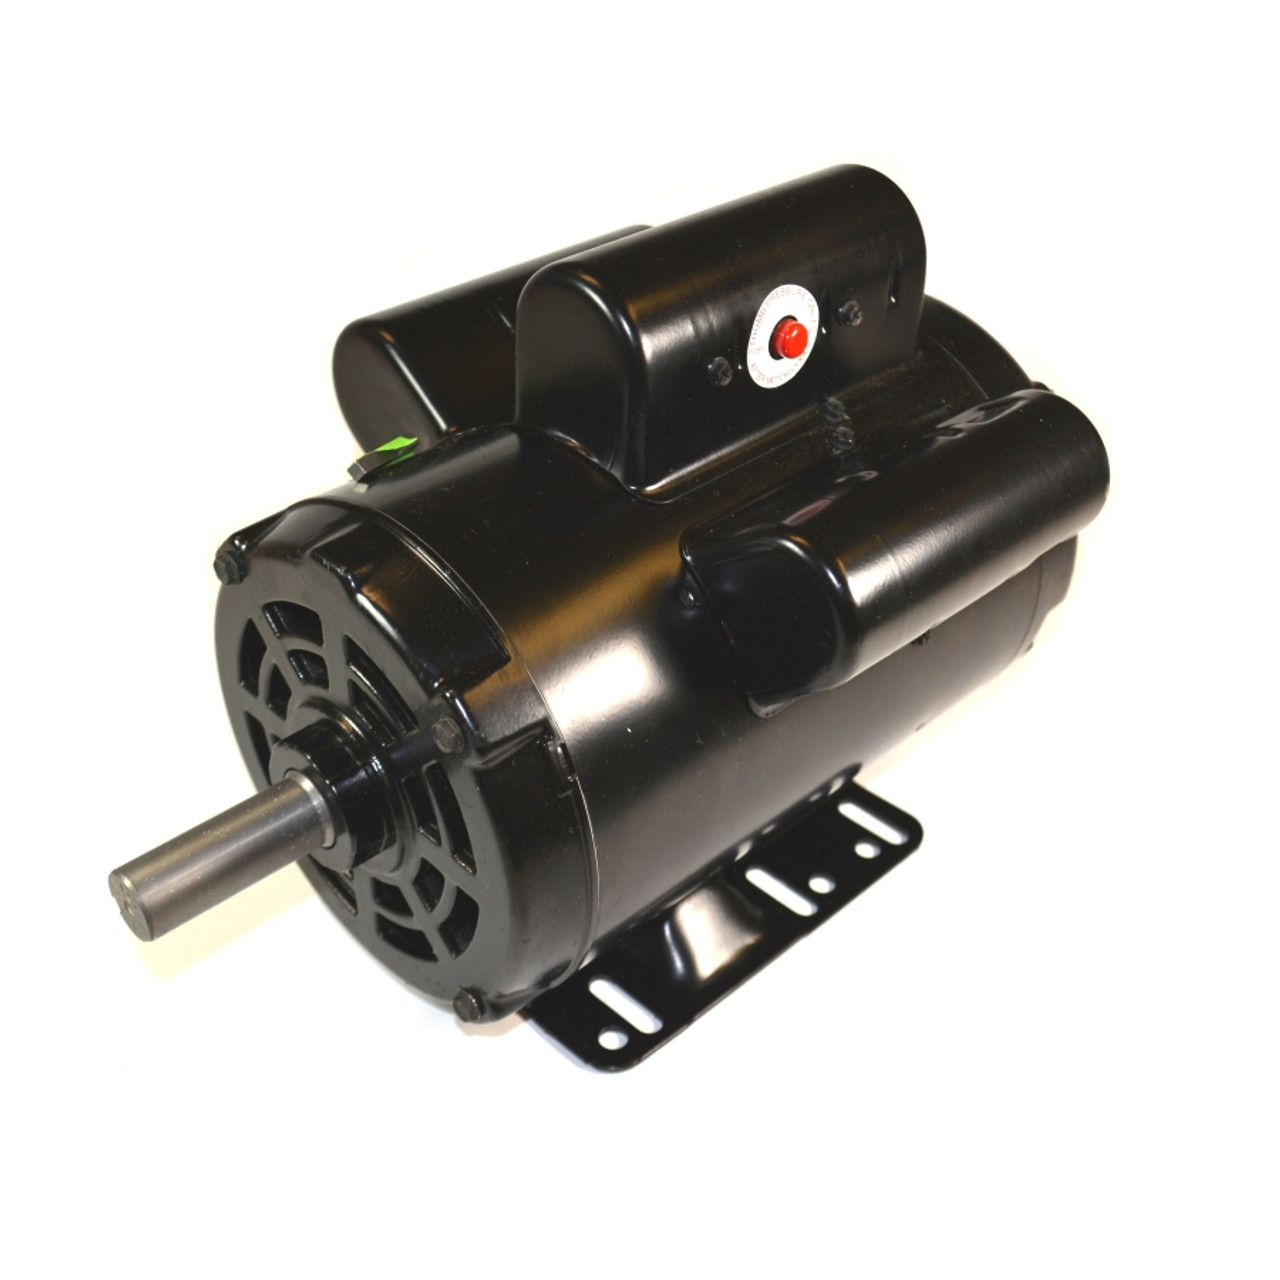 5 Hp Electric Motor >> 1312101146 Old 1312100087 5 Hp 230 Volt Single Phase Electric Motor